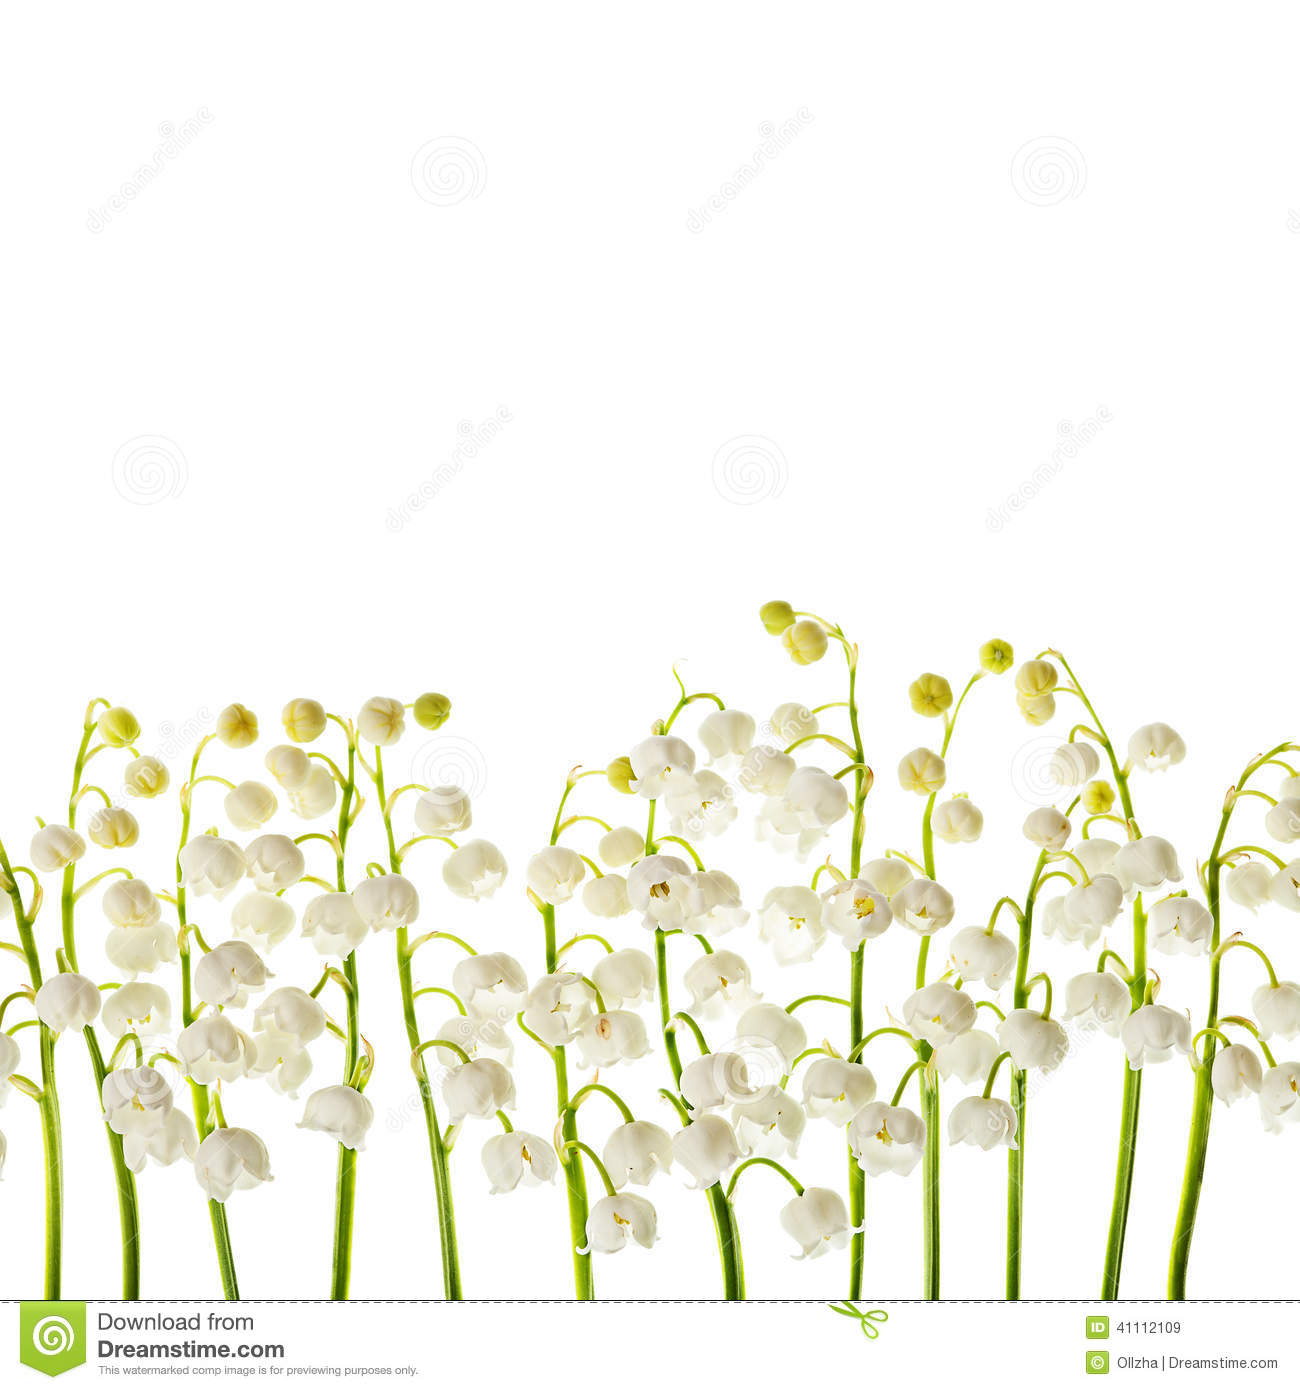 Lily of the valley flowers isolated border background stock image lily of the valley flowers isolated border background izmirmasajfo